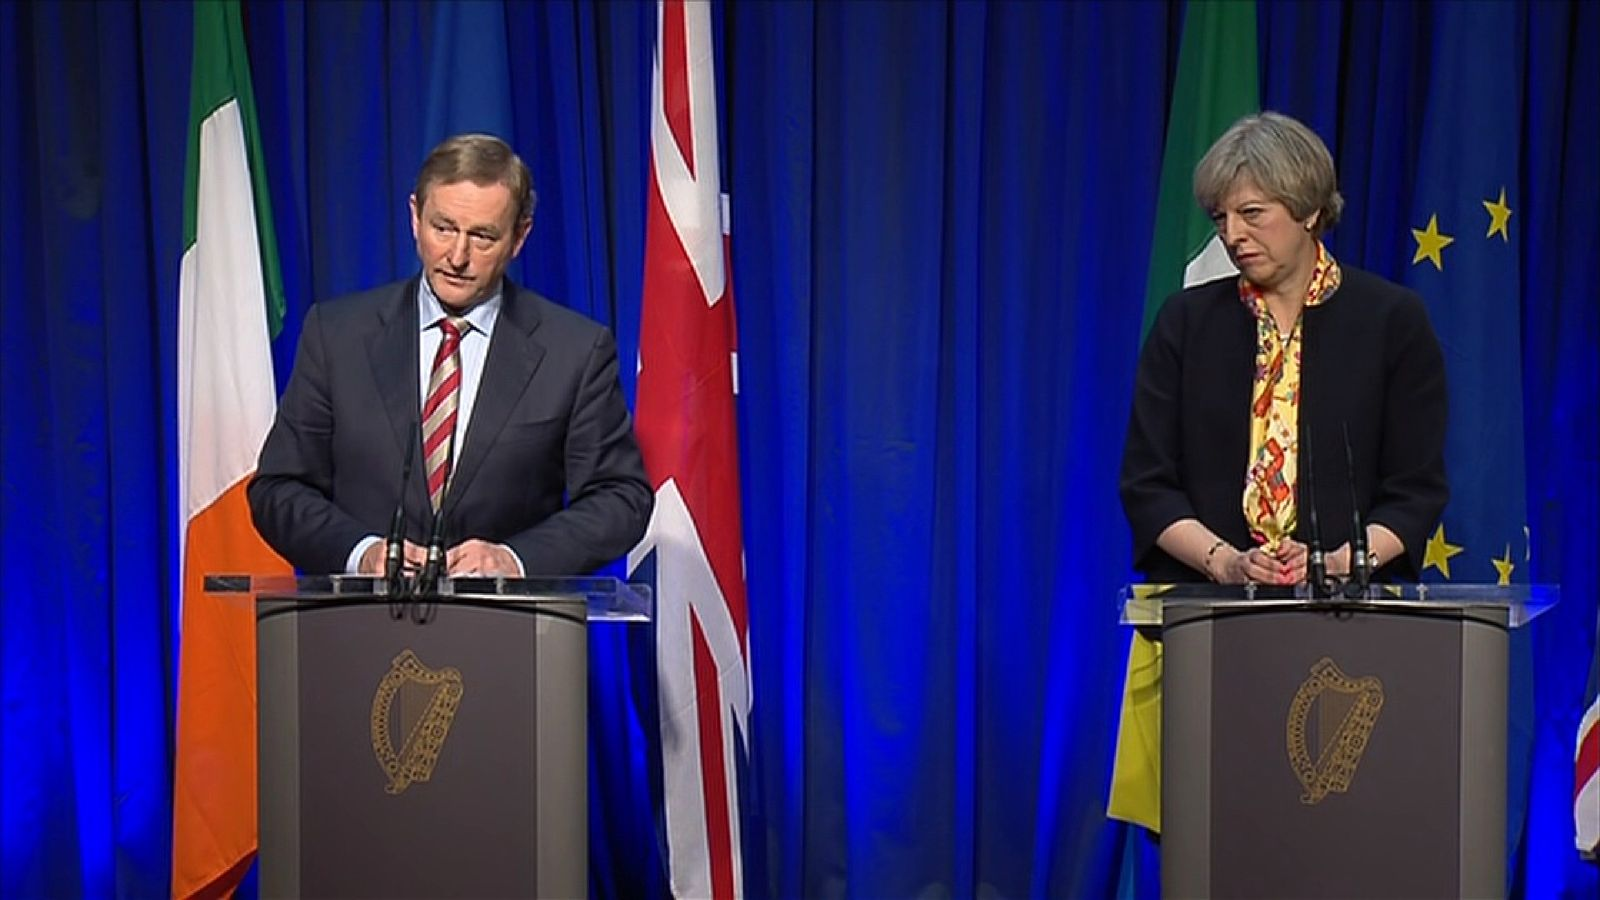 Theresa May and Enda Kenny held talks in Dublin